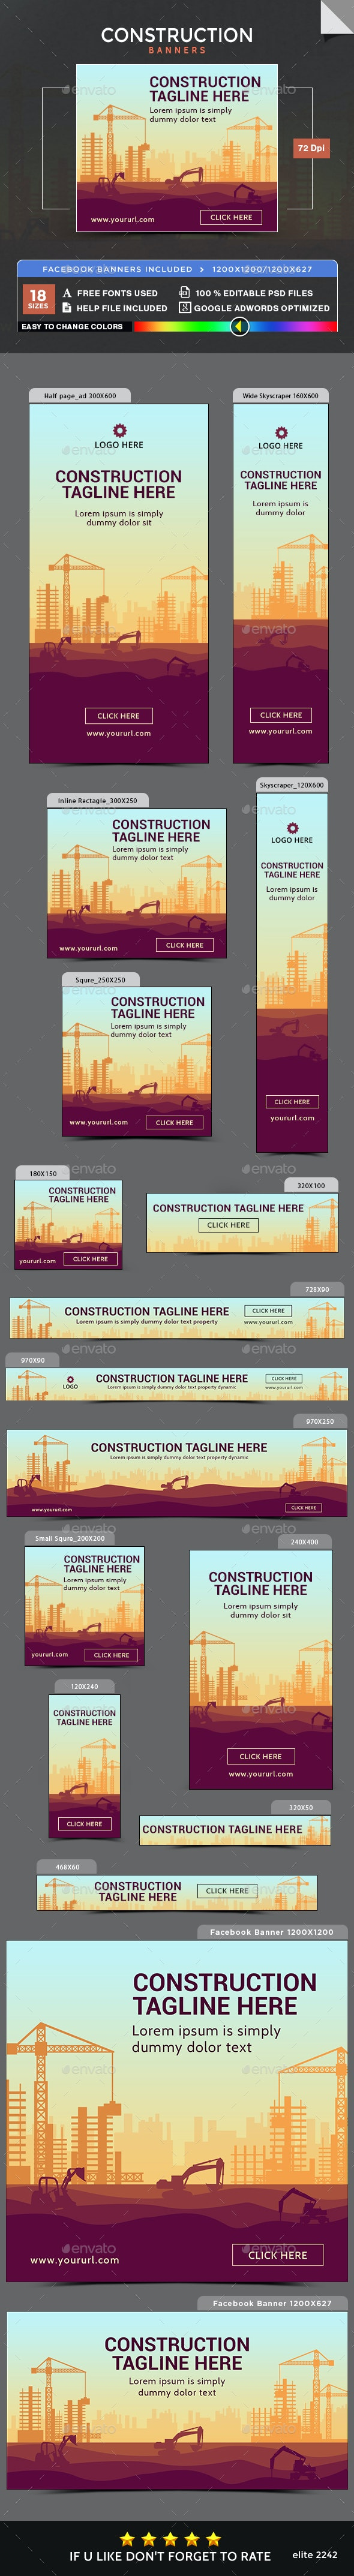 Construction Banners - Image Included - Banners & Ads Web Elements